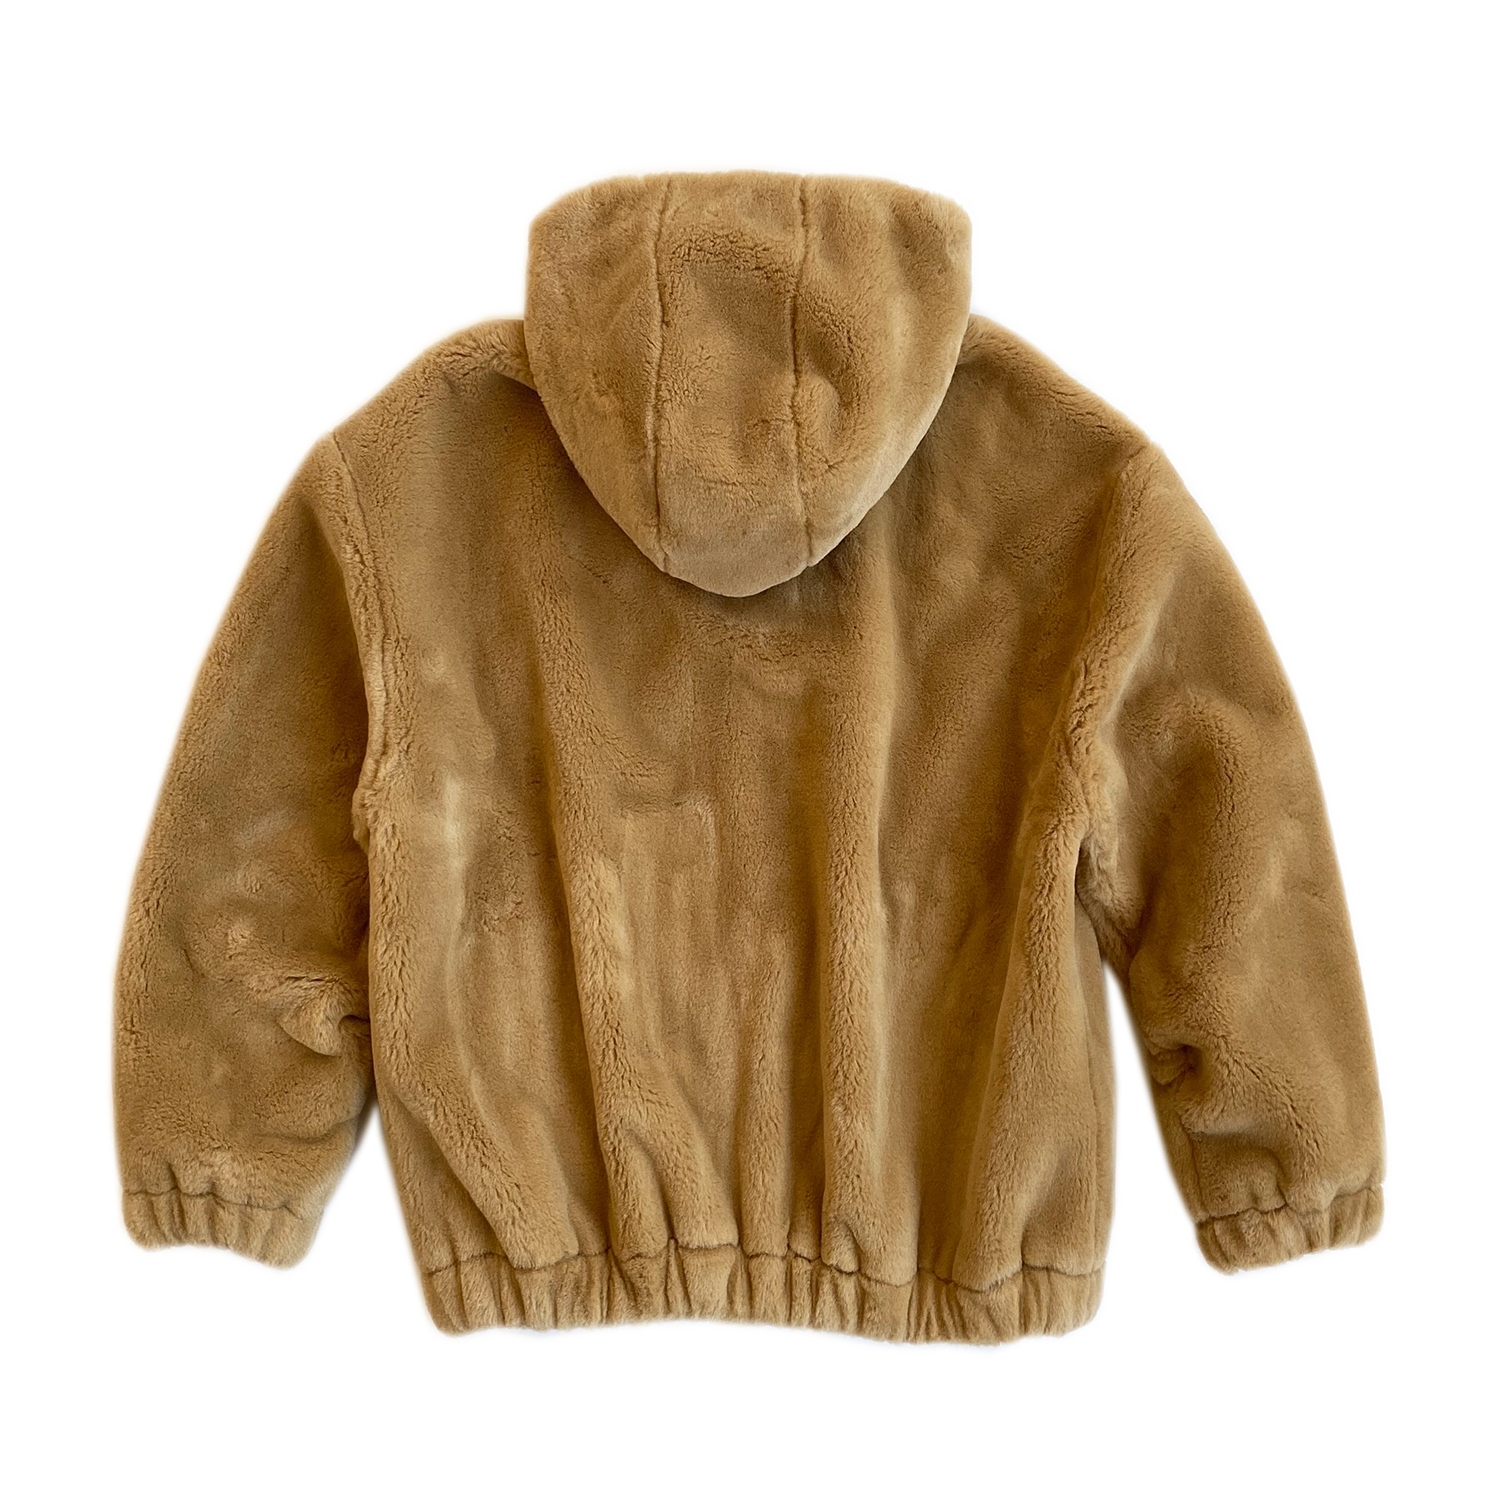 products/biofur_camelzipfront_back.png